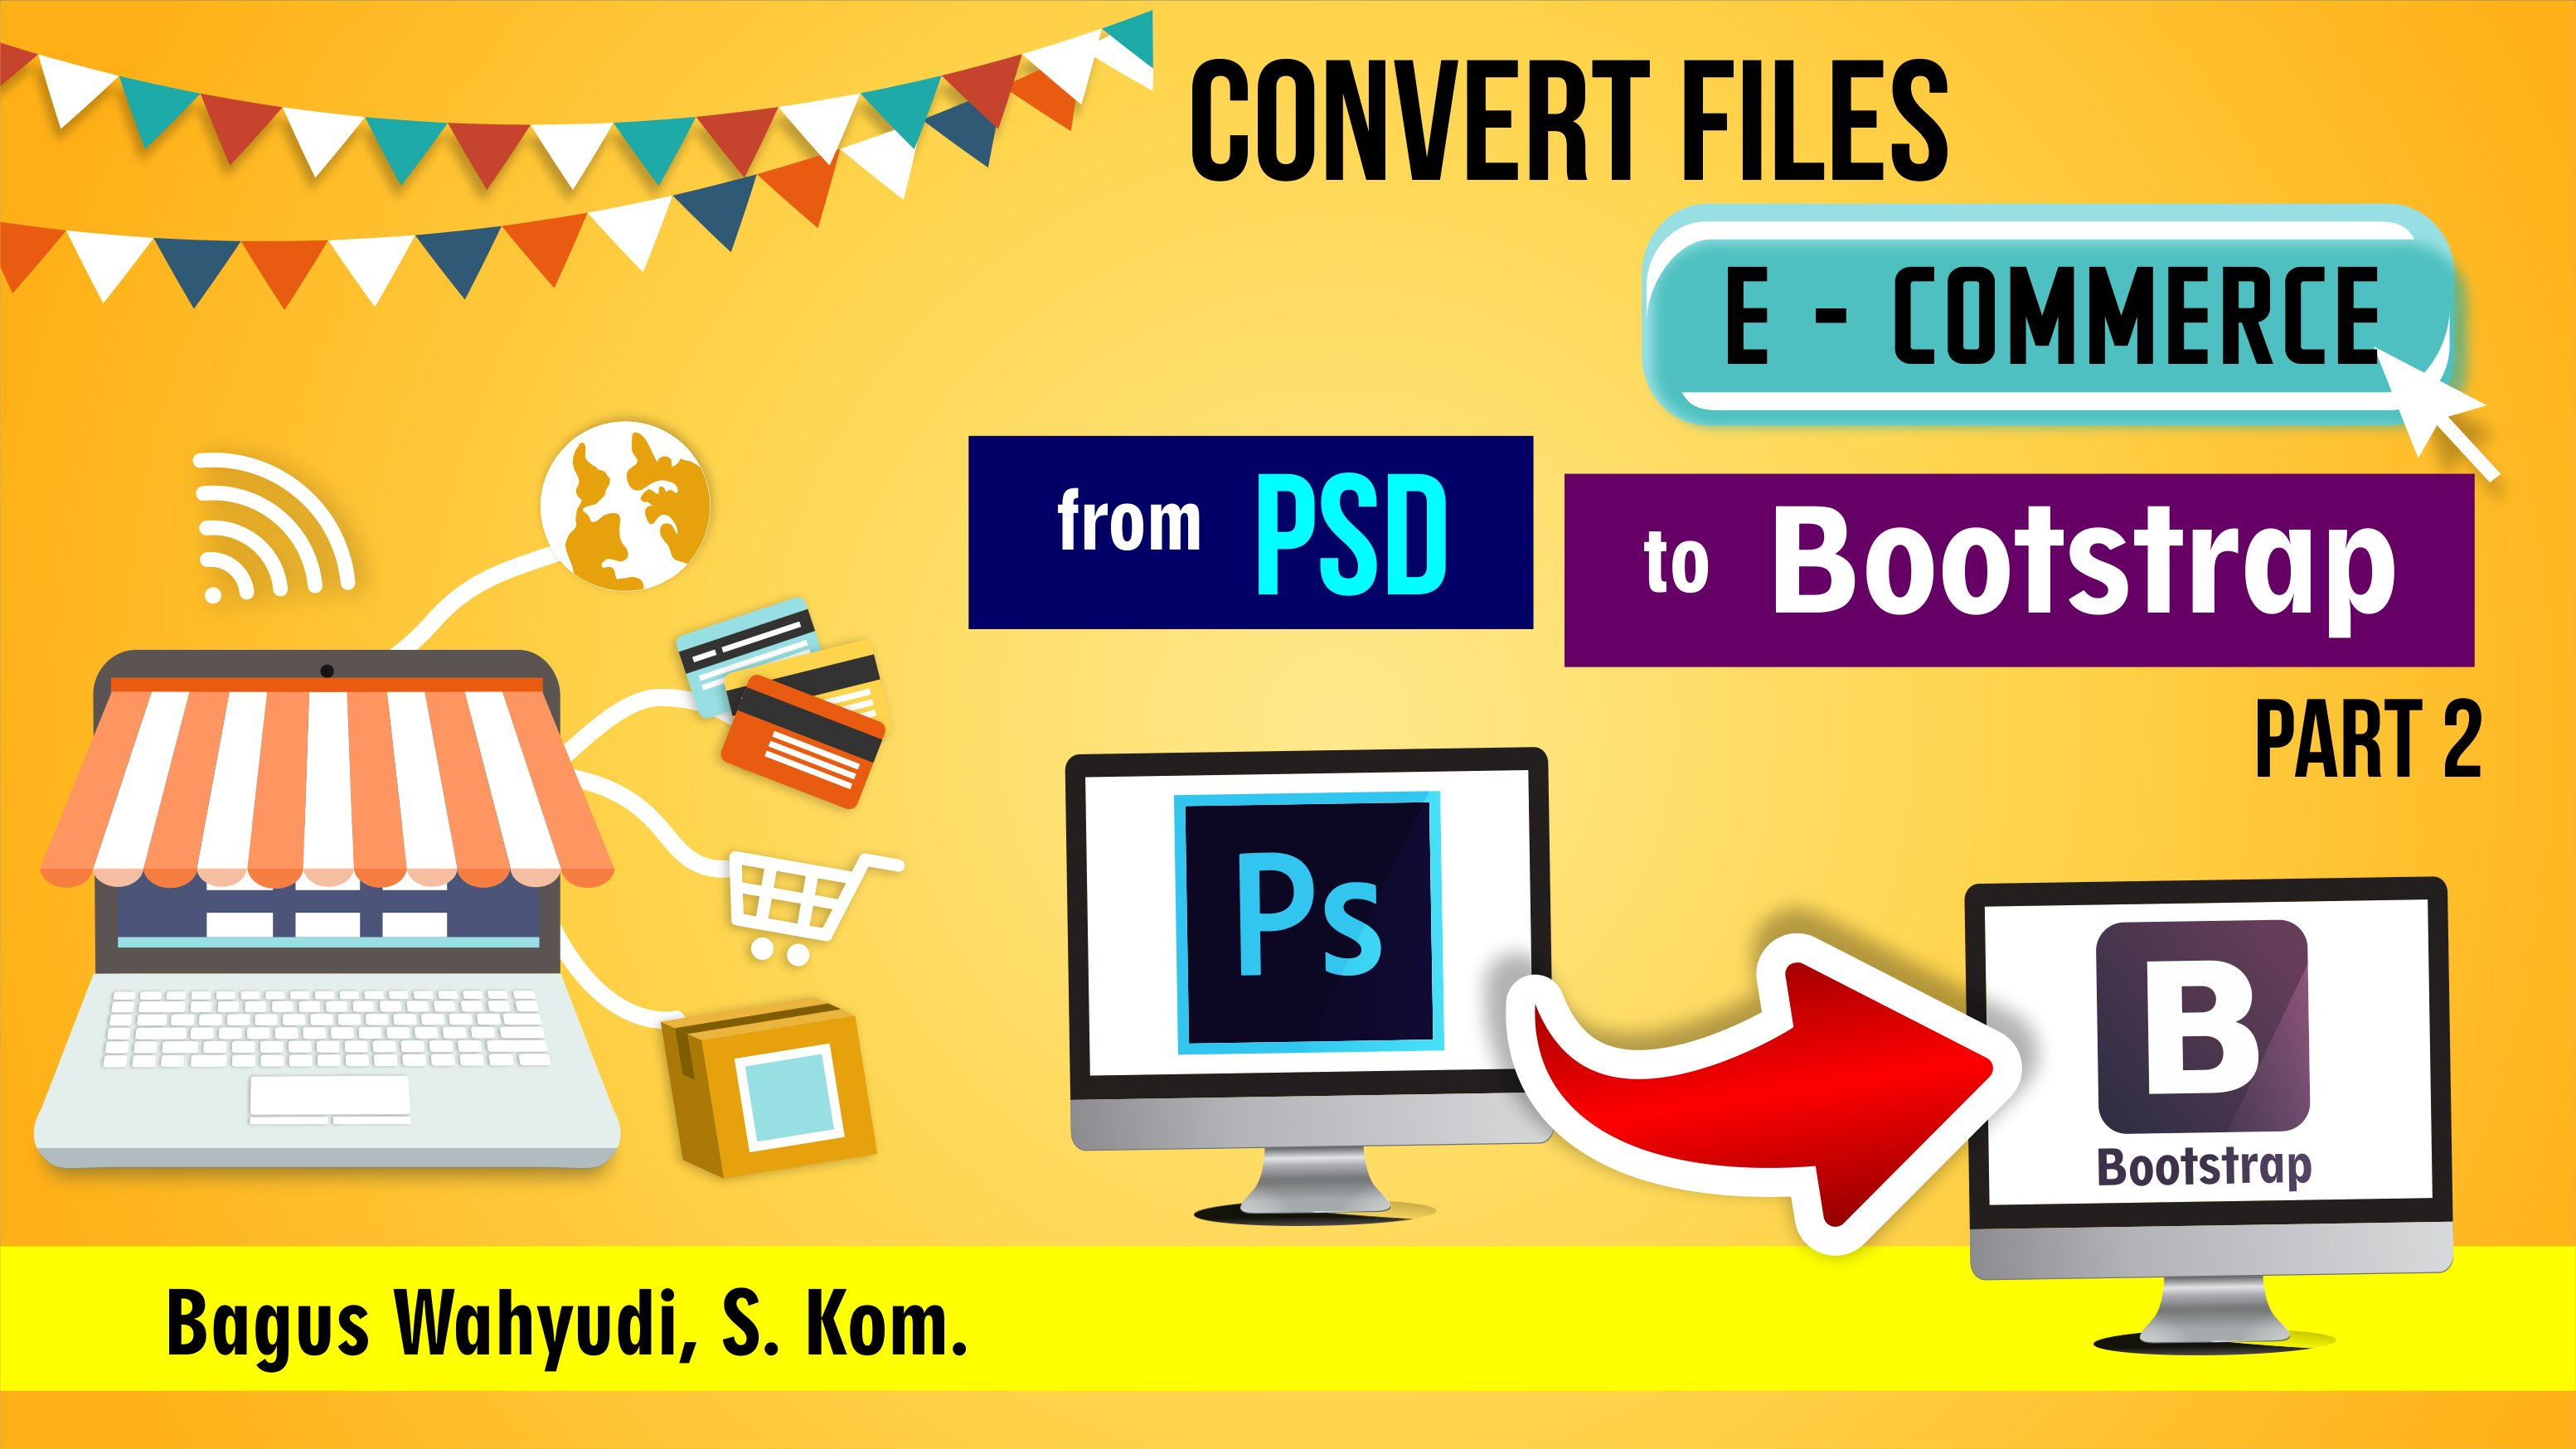 Convert files eCommerce from PSD to Bootstrap Part 1